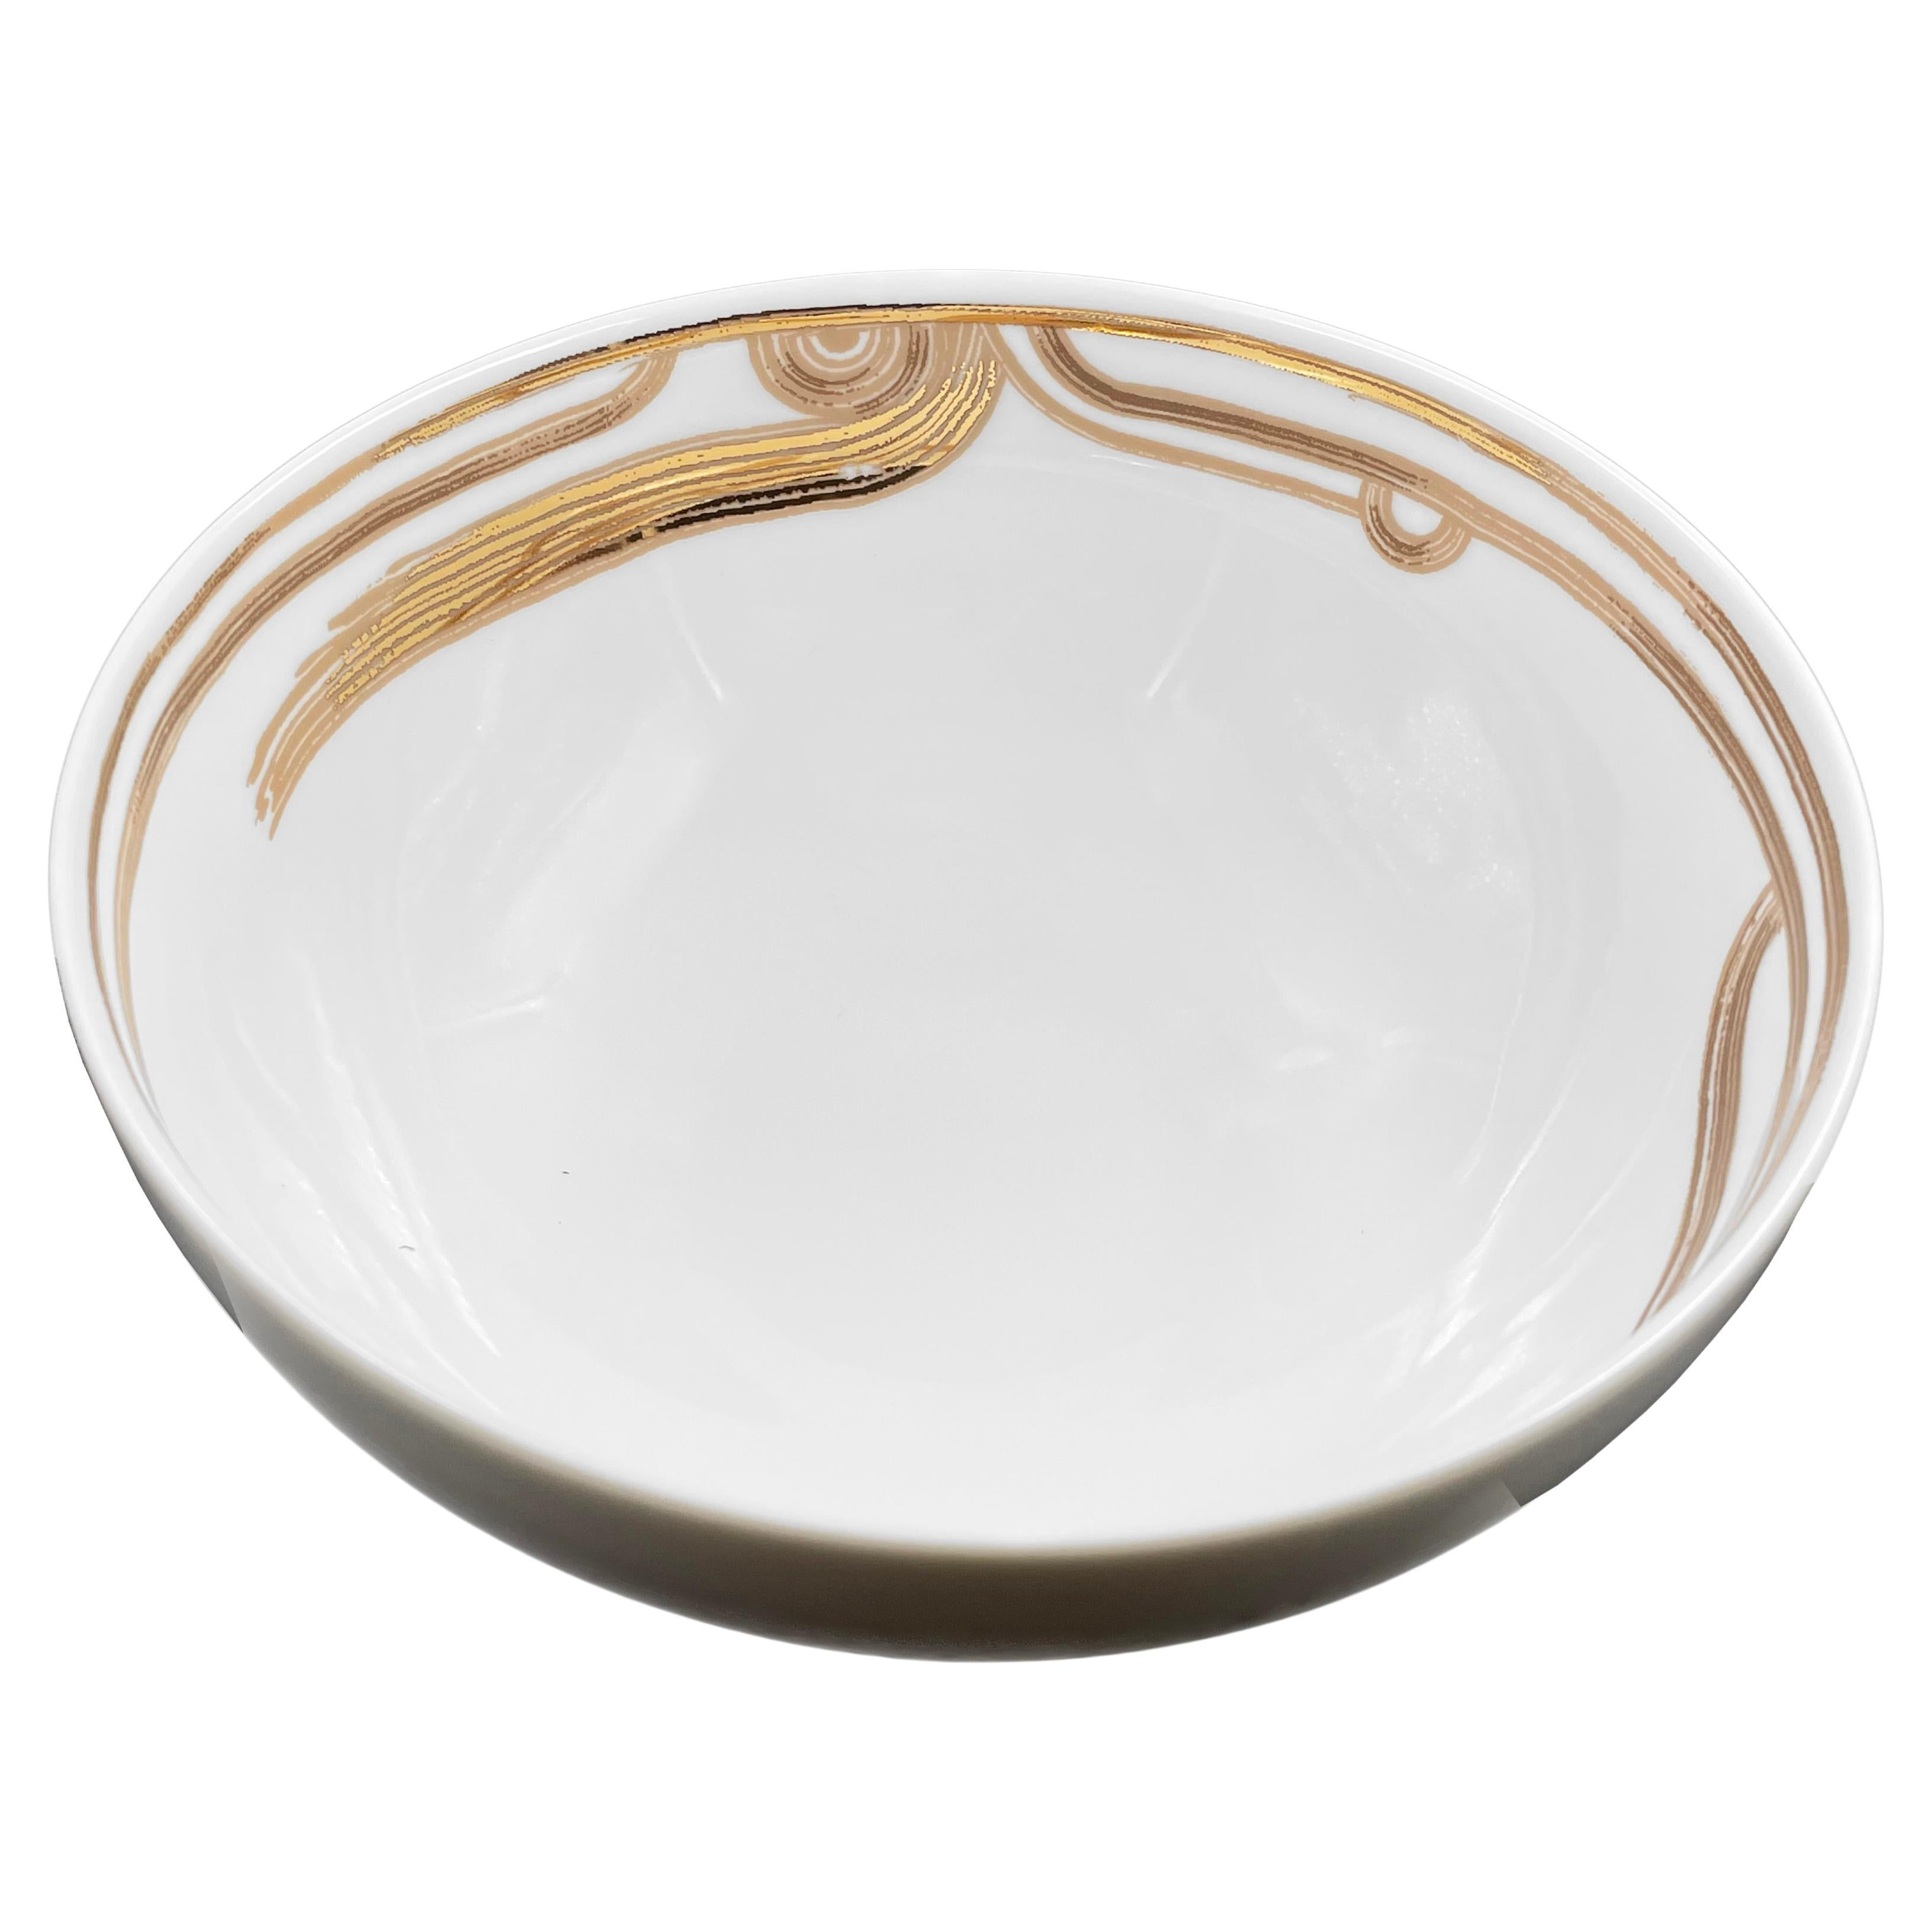 New And Custom Serving Bowls